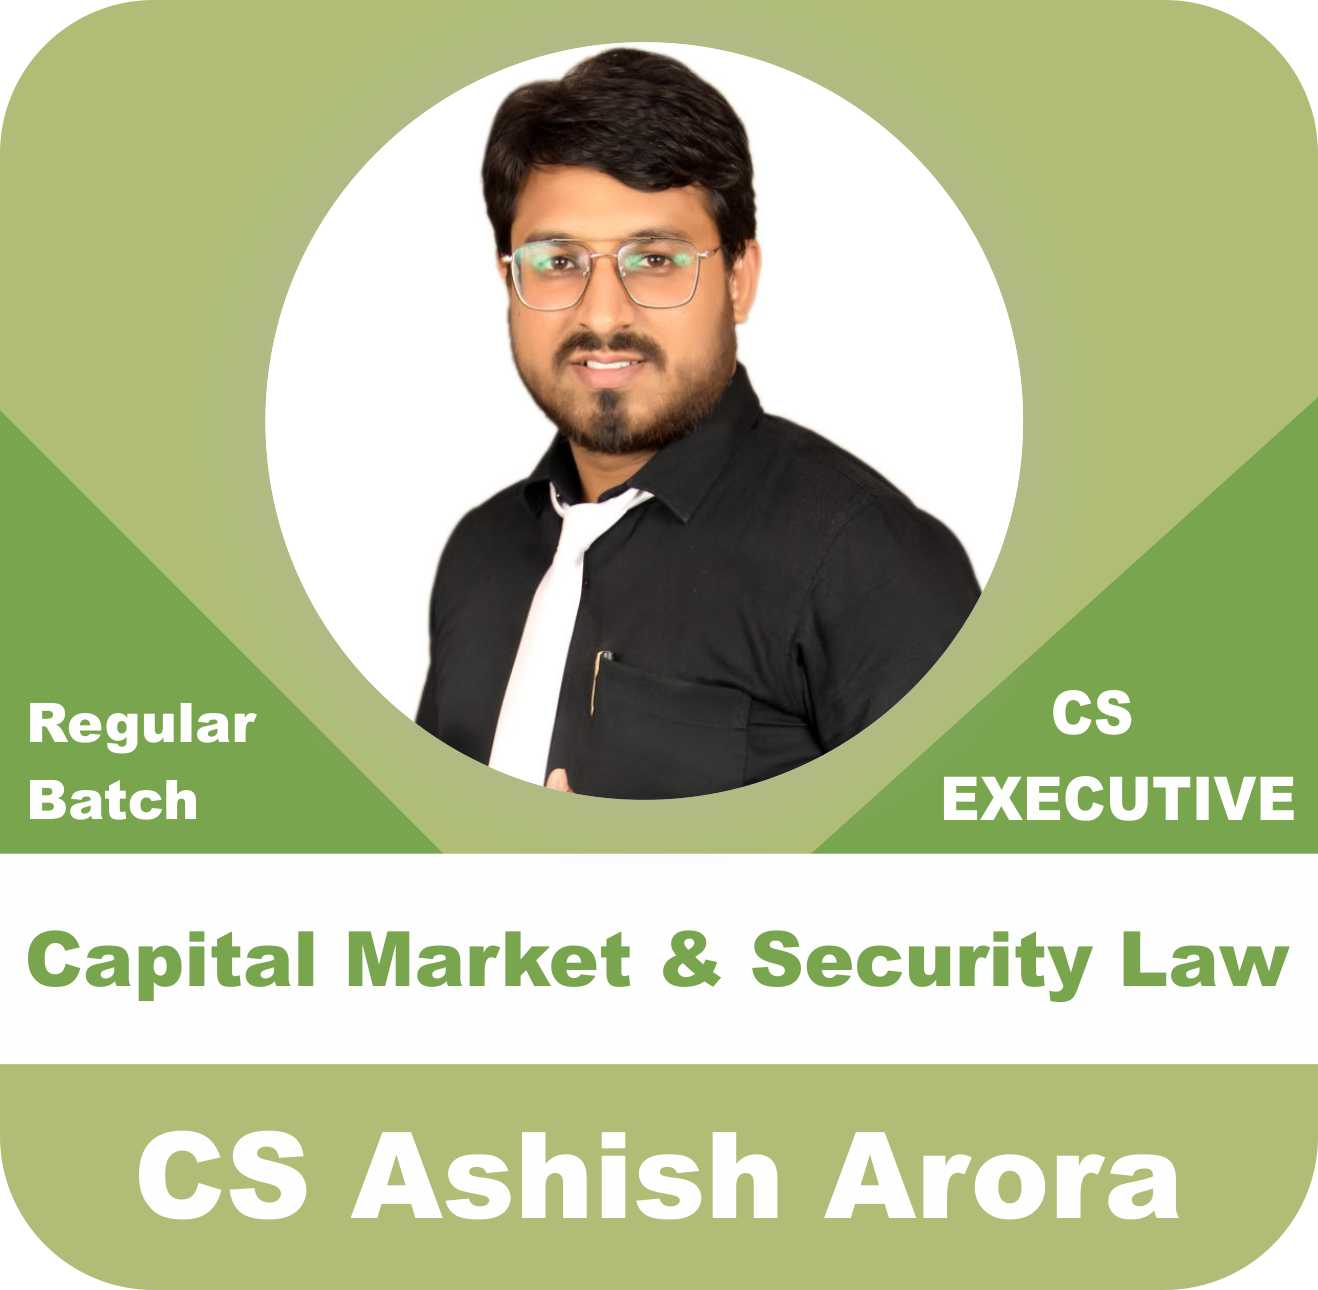 Capital Market and Security Law Regular Batch